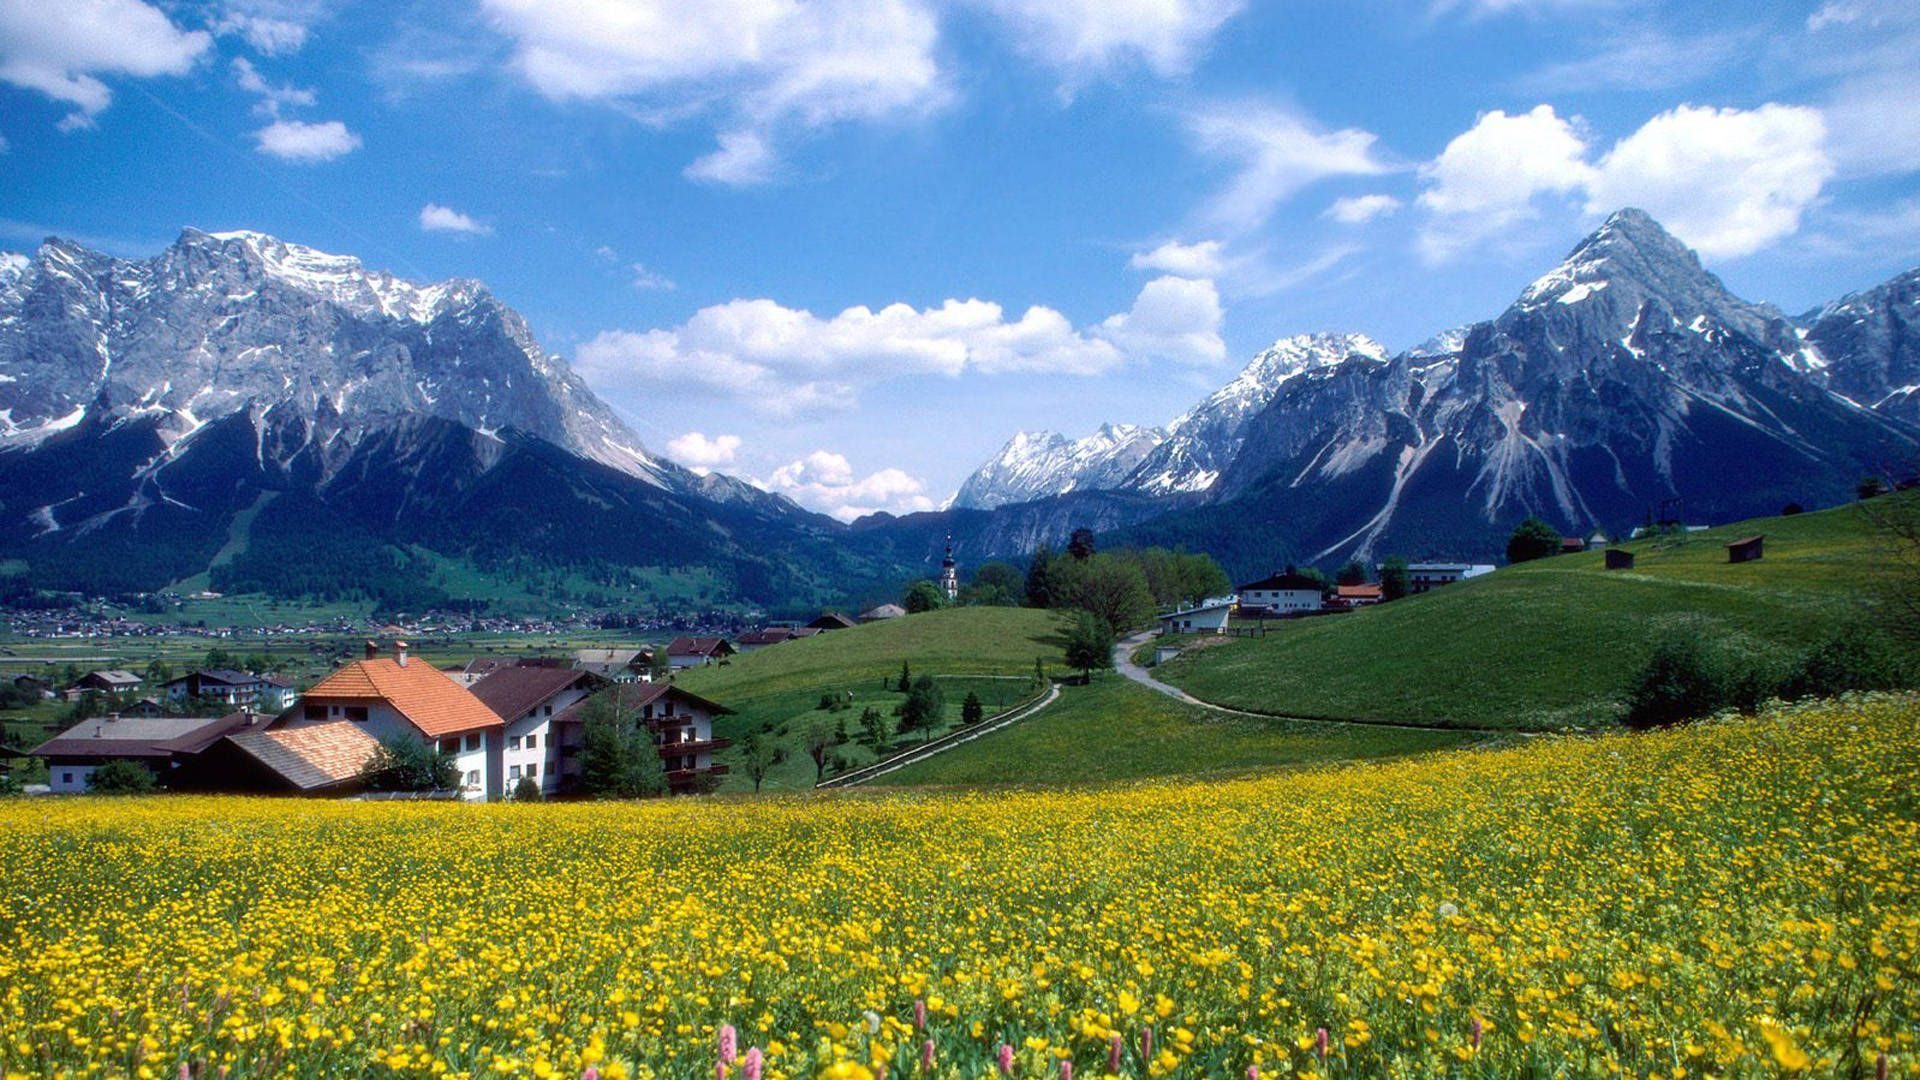 Alpine Meadows Of Switzerland